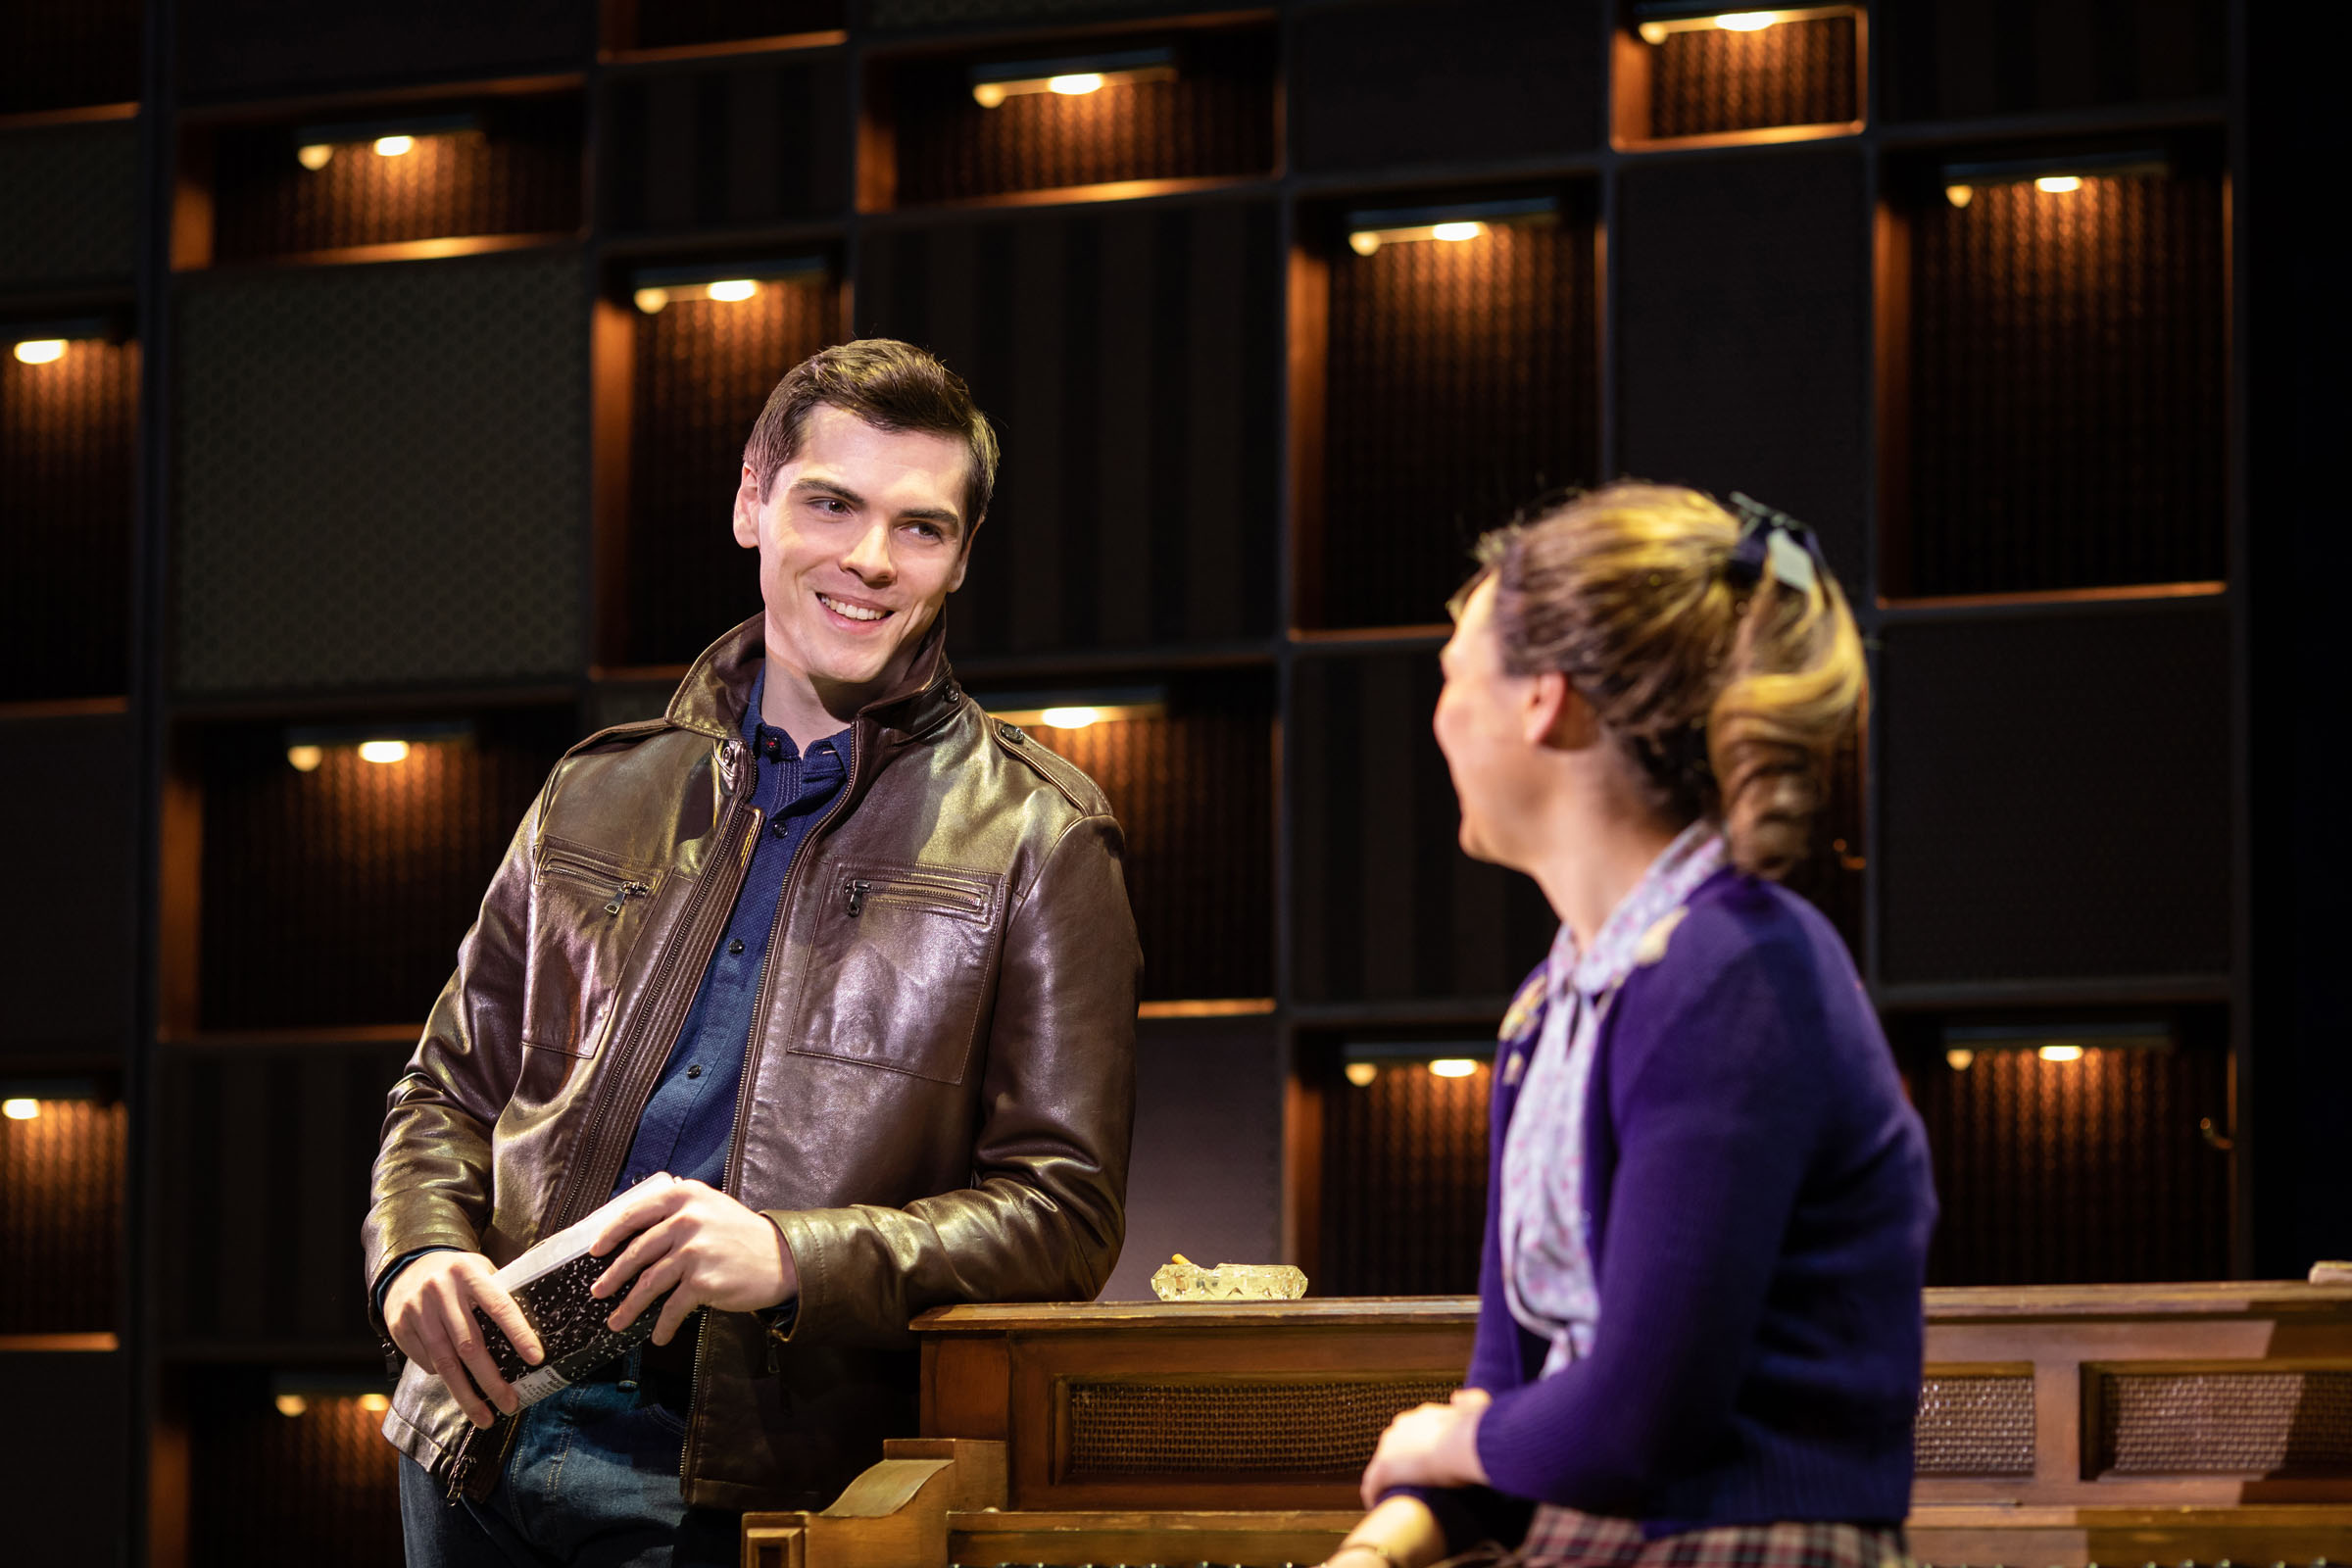 Adam Gillian as Gerry Goffin and Daisy Wood-Davis as Carole King in 'Beautiful - The Carole King Musical'